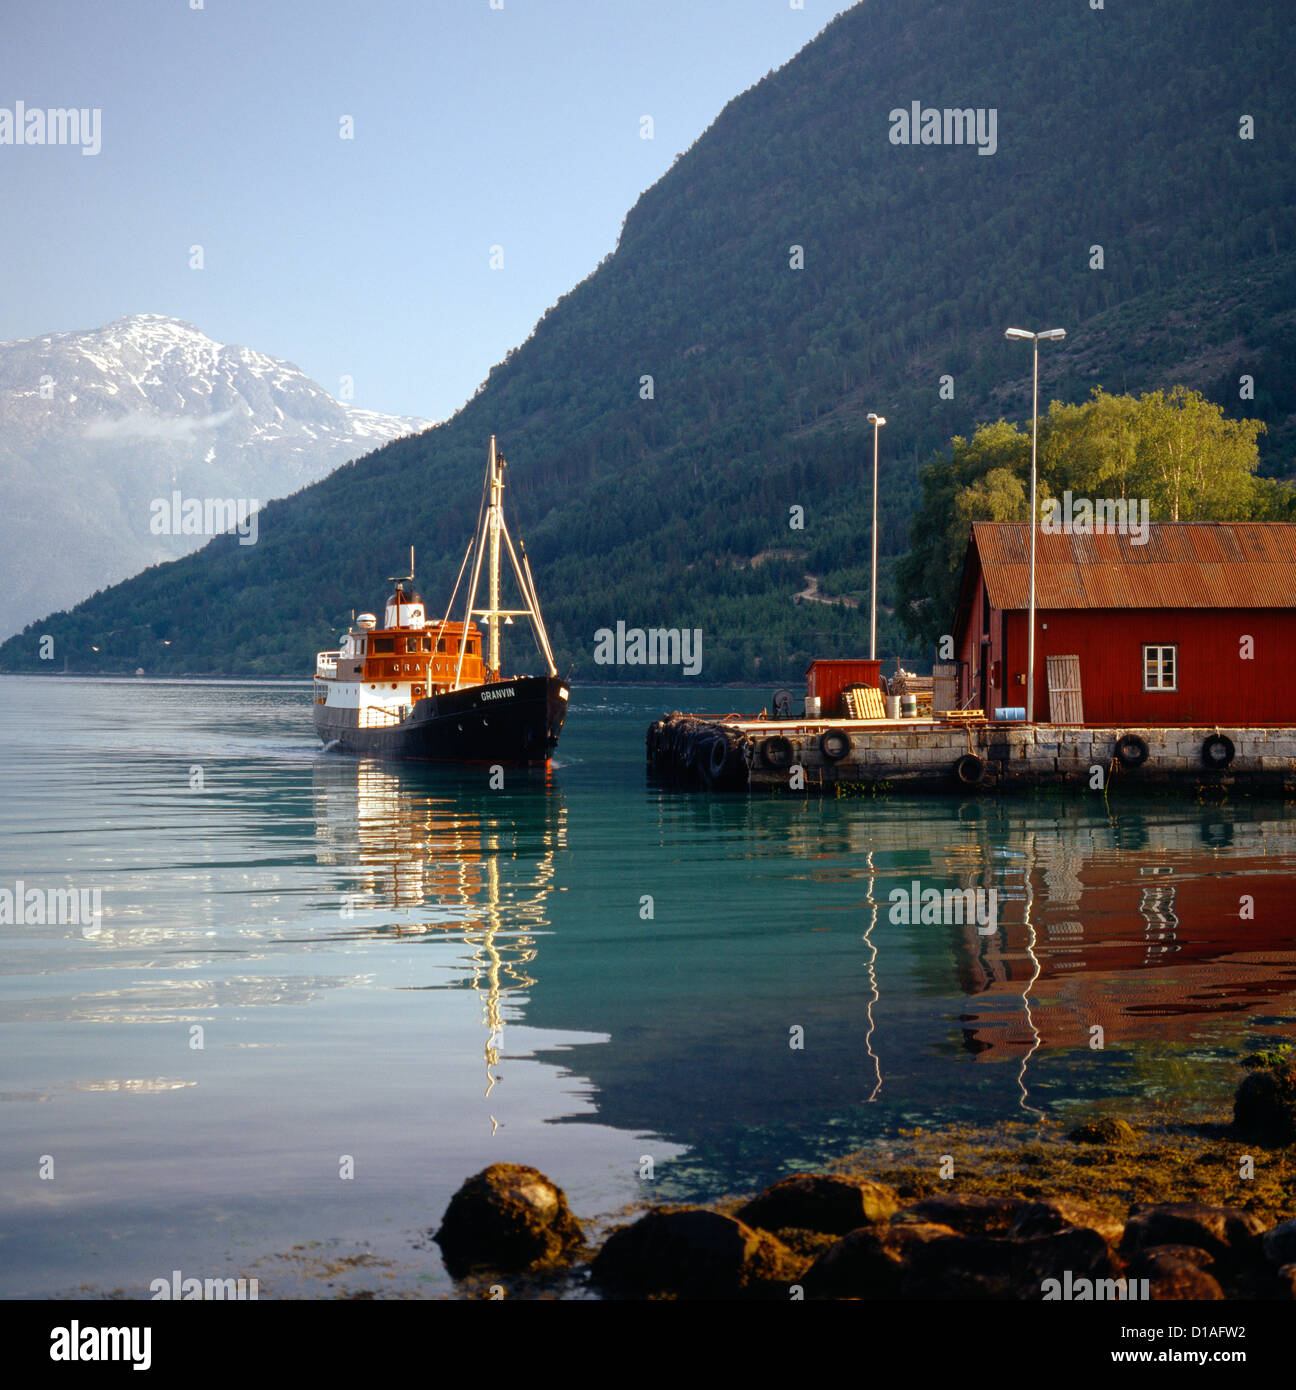 The old historic vessel Granvin docking at the harbor - Stock Image